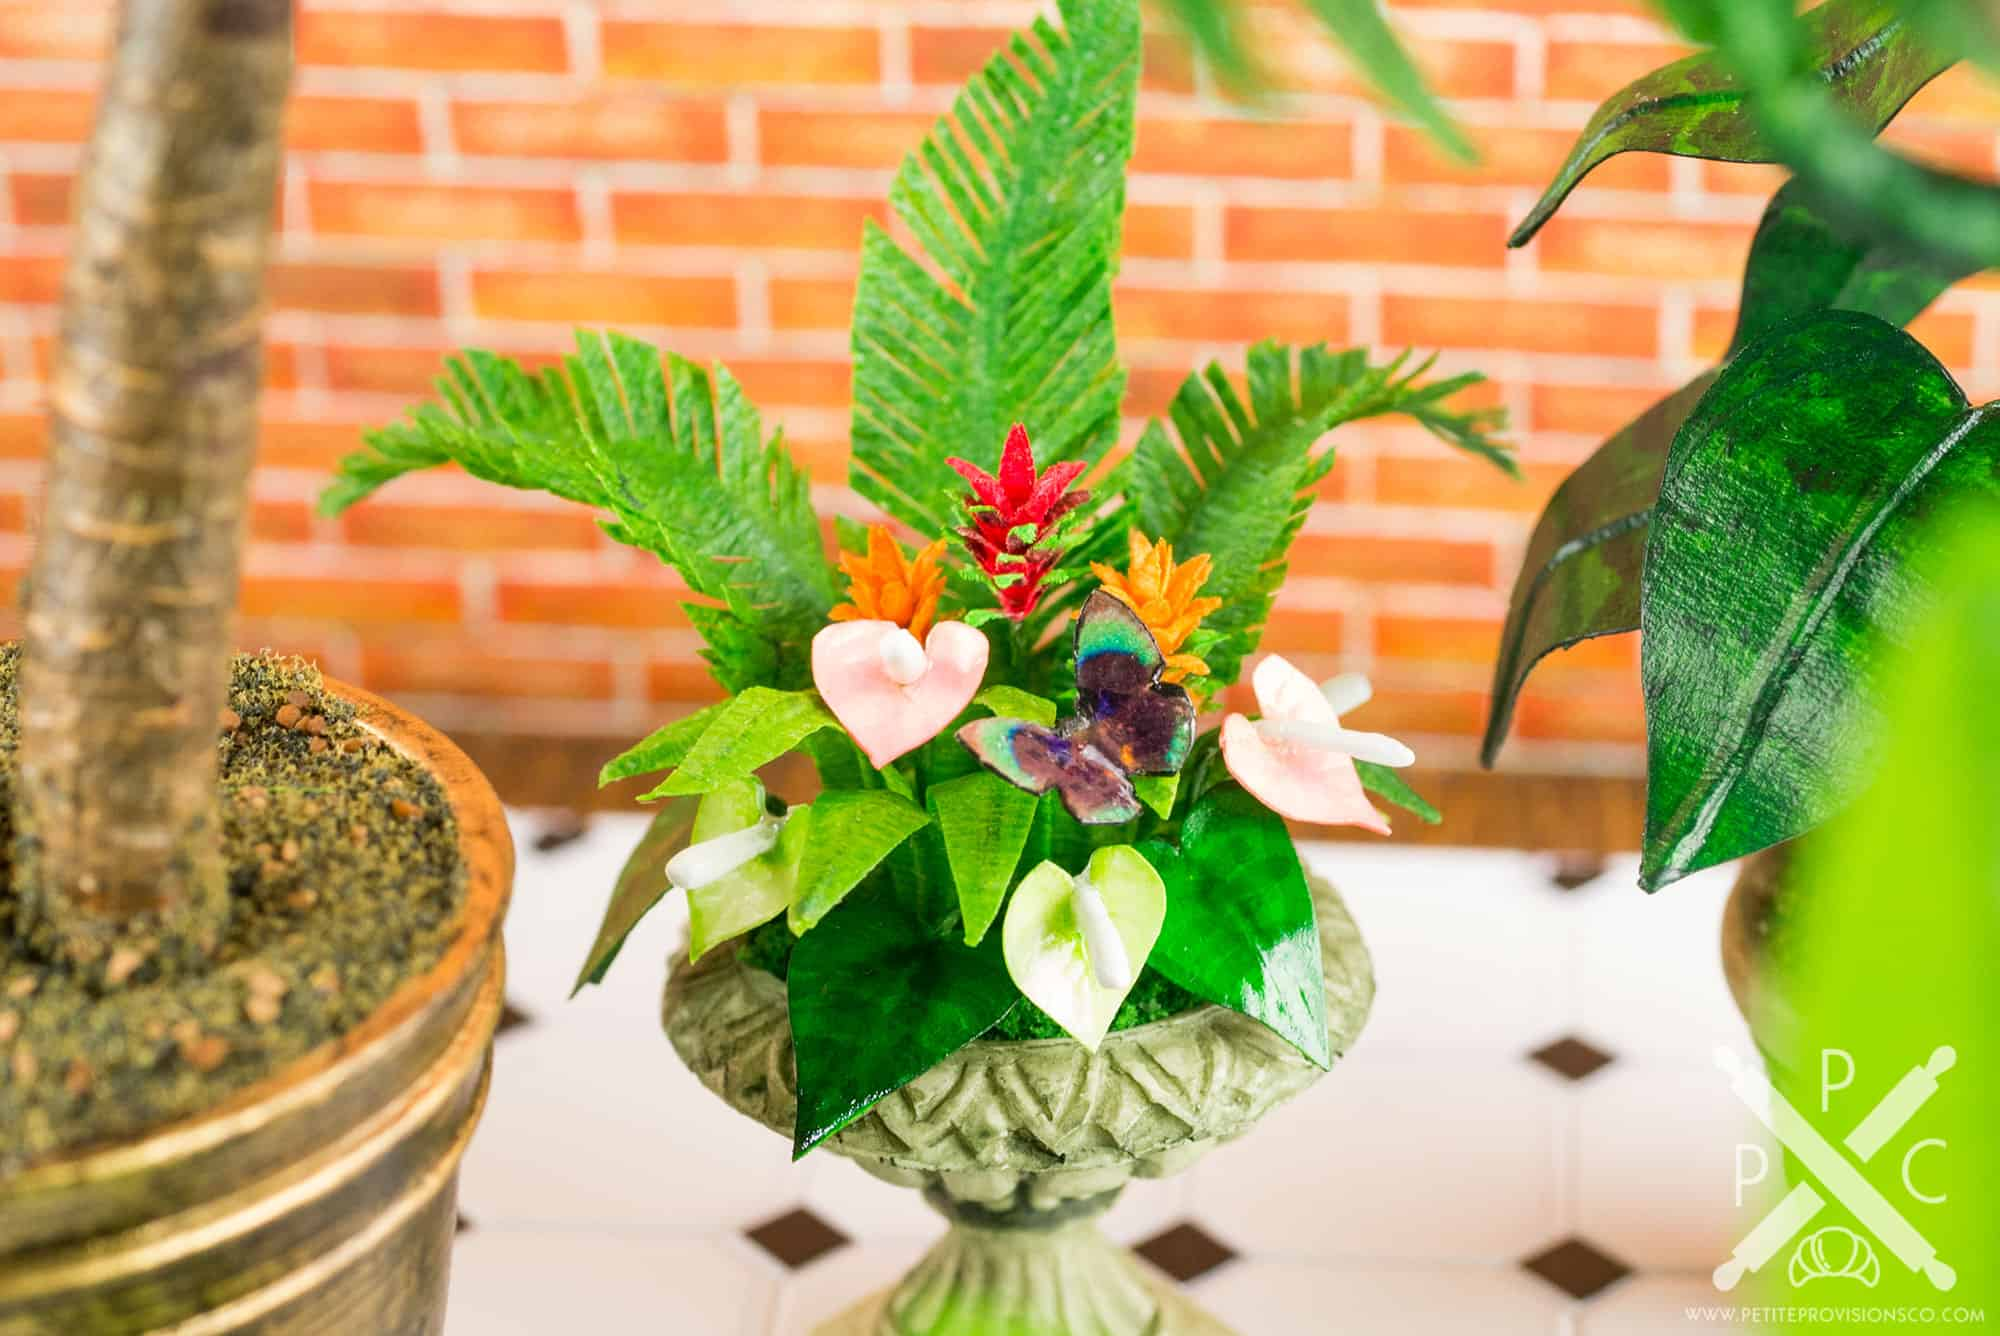 Dollhouse Miniature Conservatory by The Petite Provisions Co. - Anthurium Arrangement